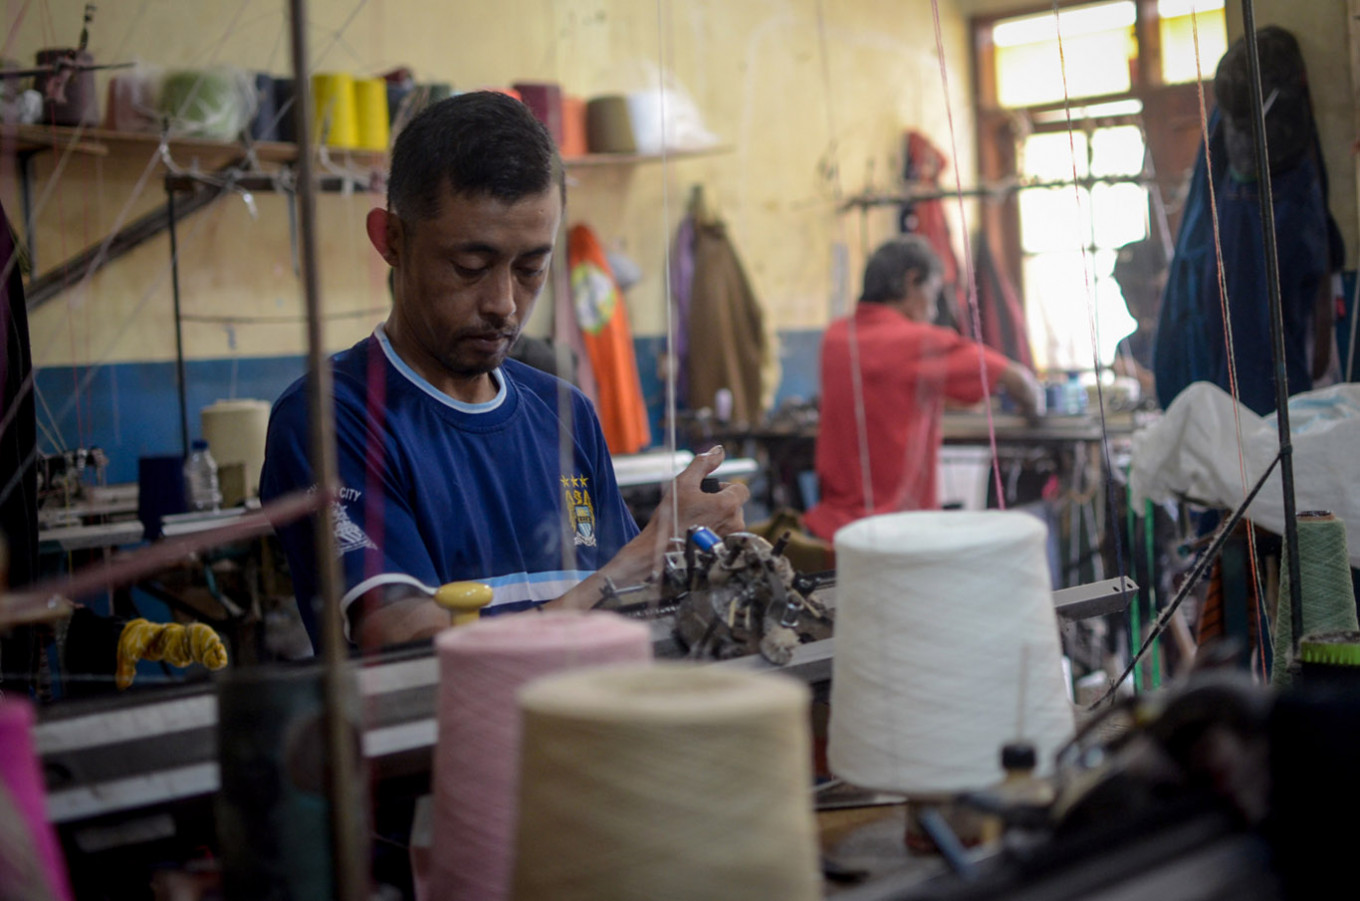 Garment workers seek government, corporate responsibility